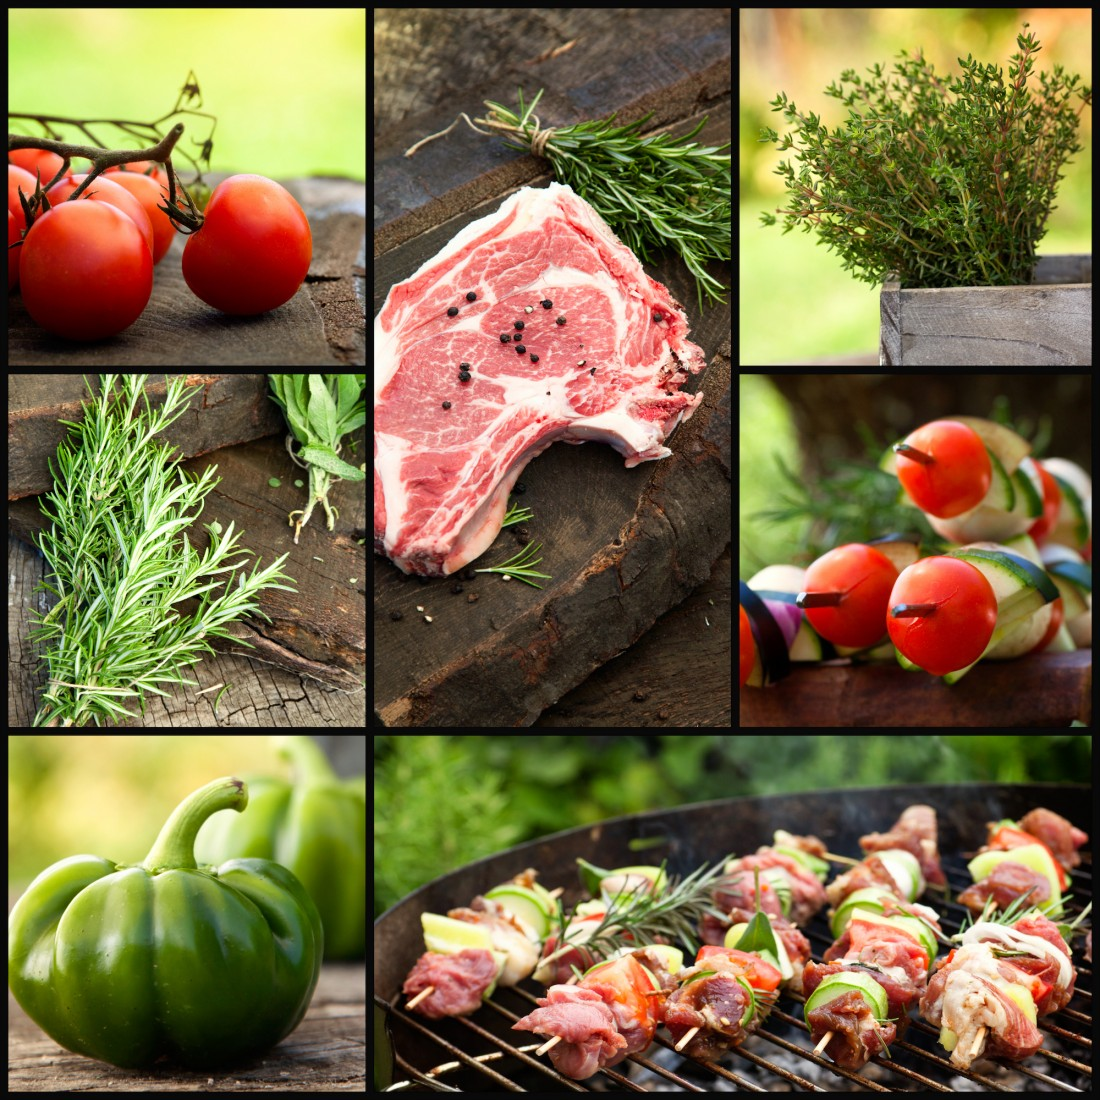 Restaurant series. Barbecue grill food collage. Fresh meat with herbs and vegetables. Grilled meat